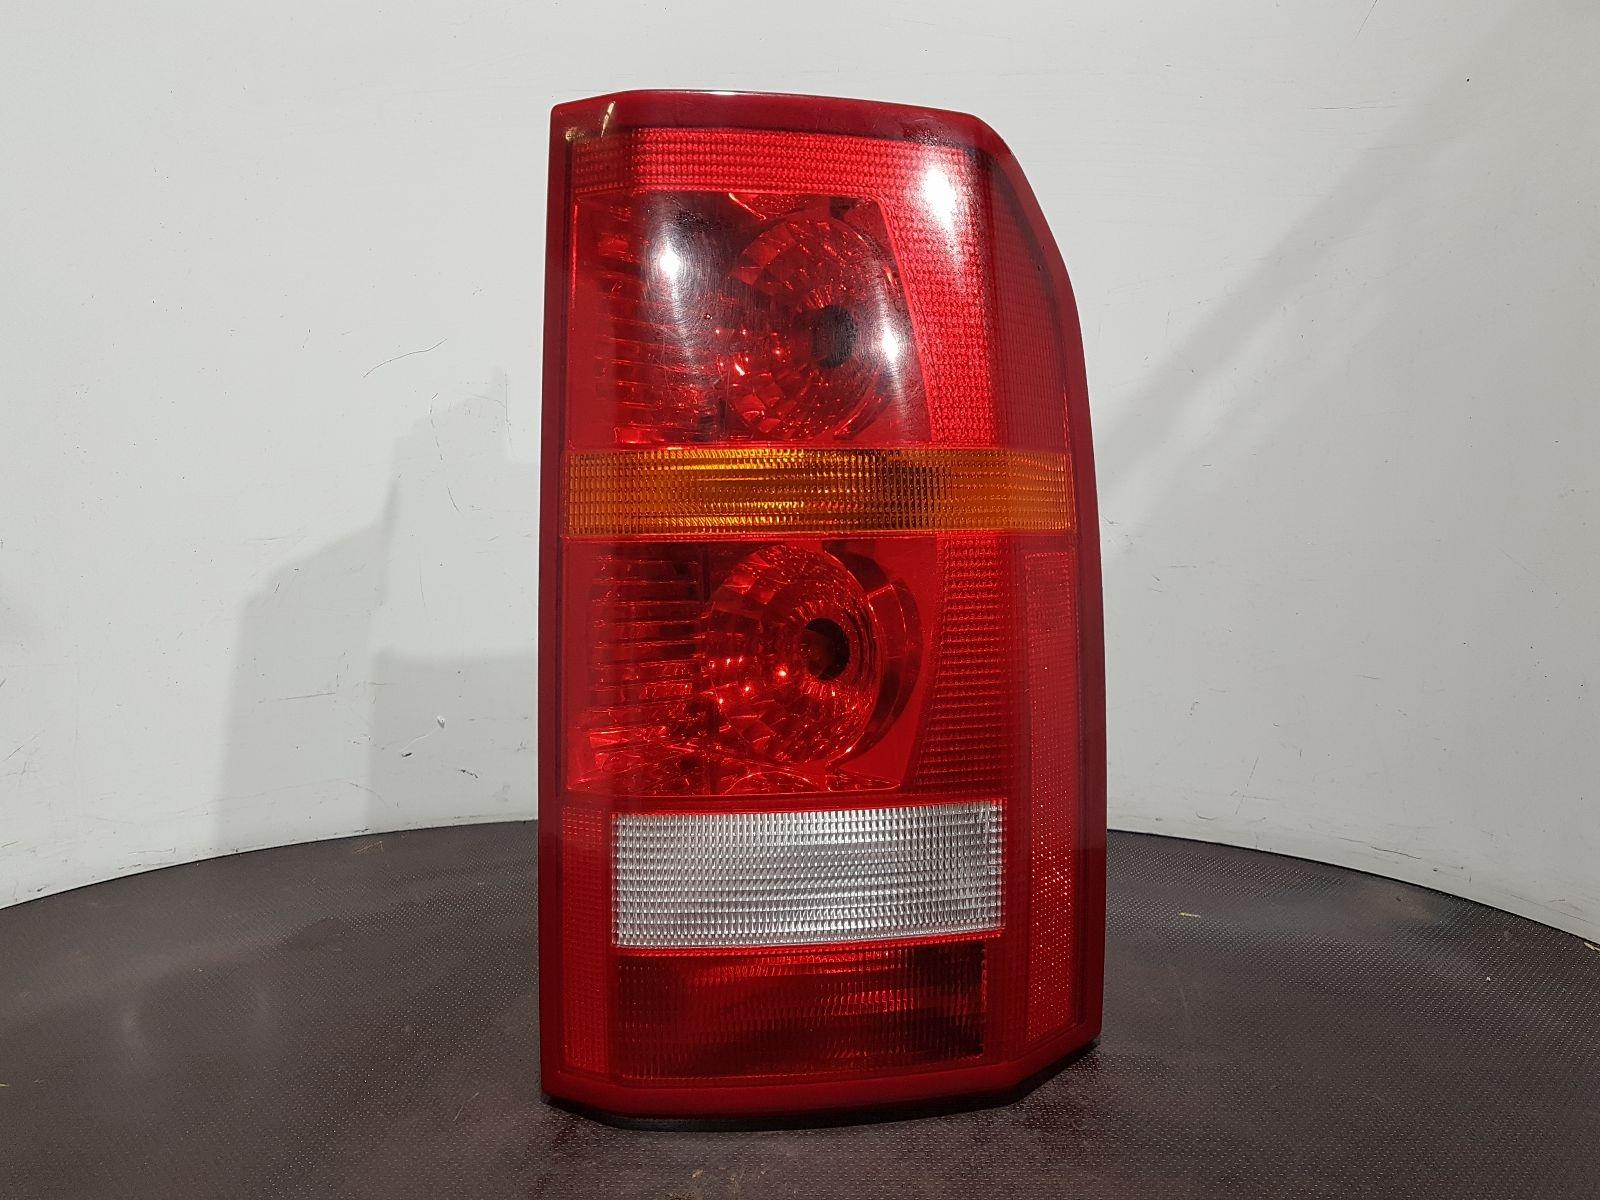 Land Rover Discovery 2005 To 2009 O/S Right Drivers Rear Light XFB000563